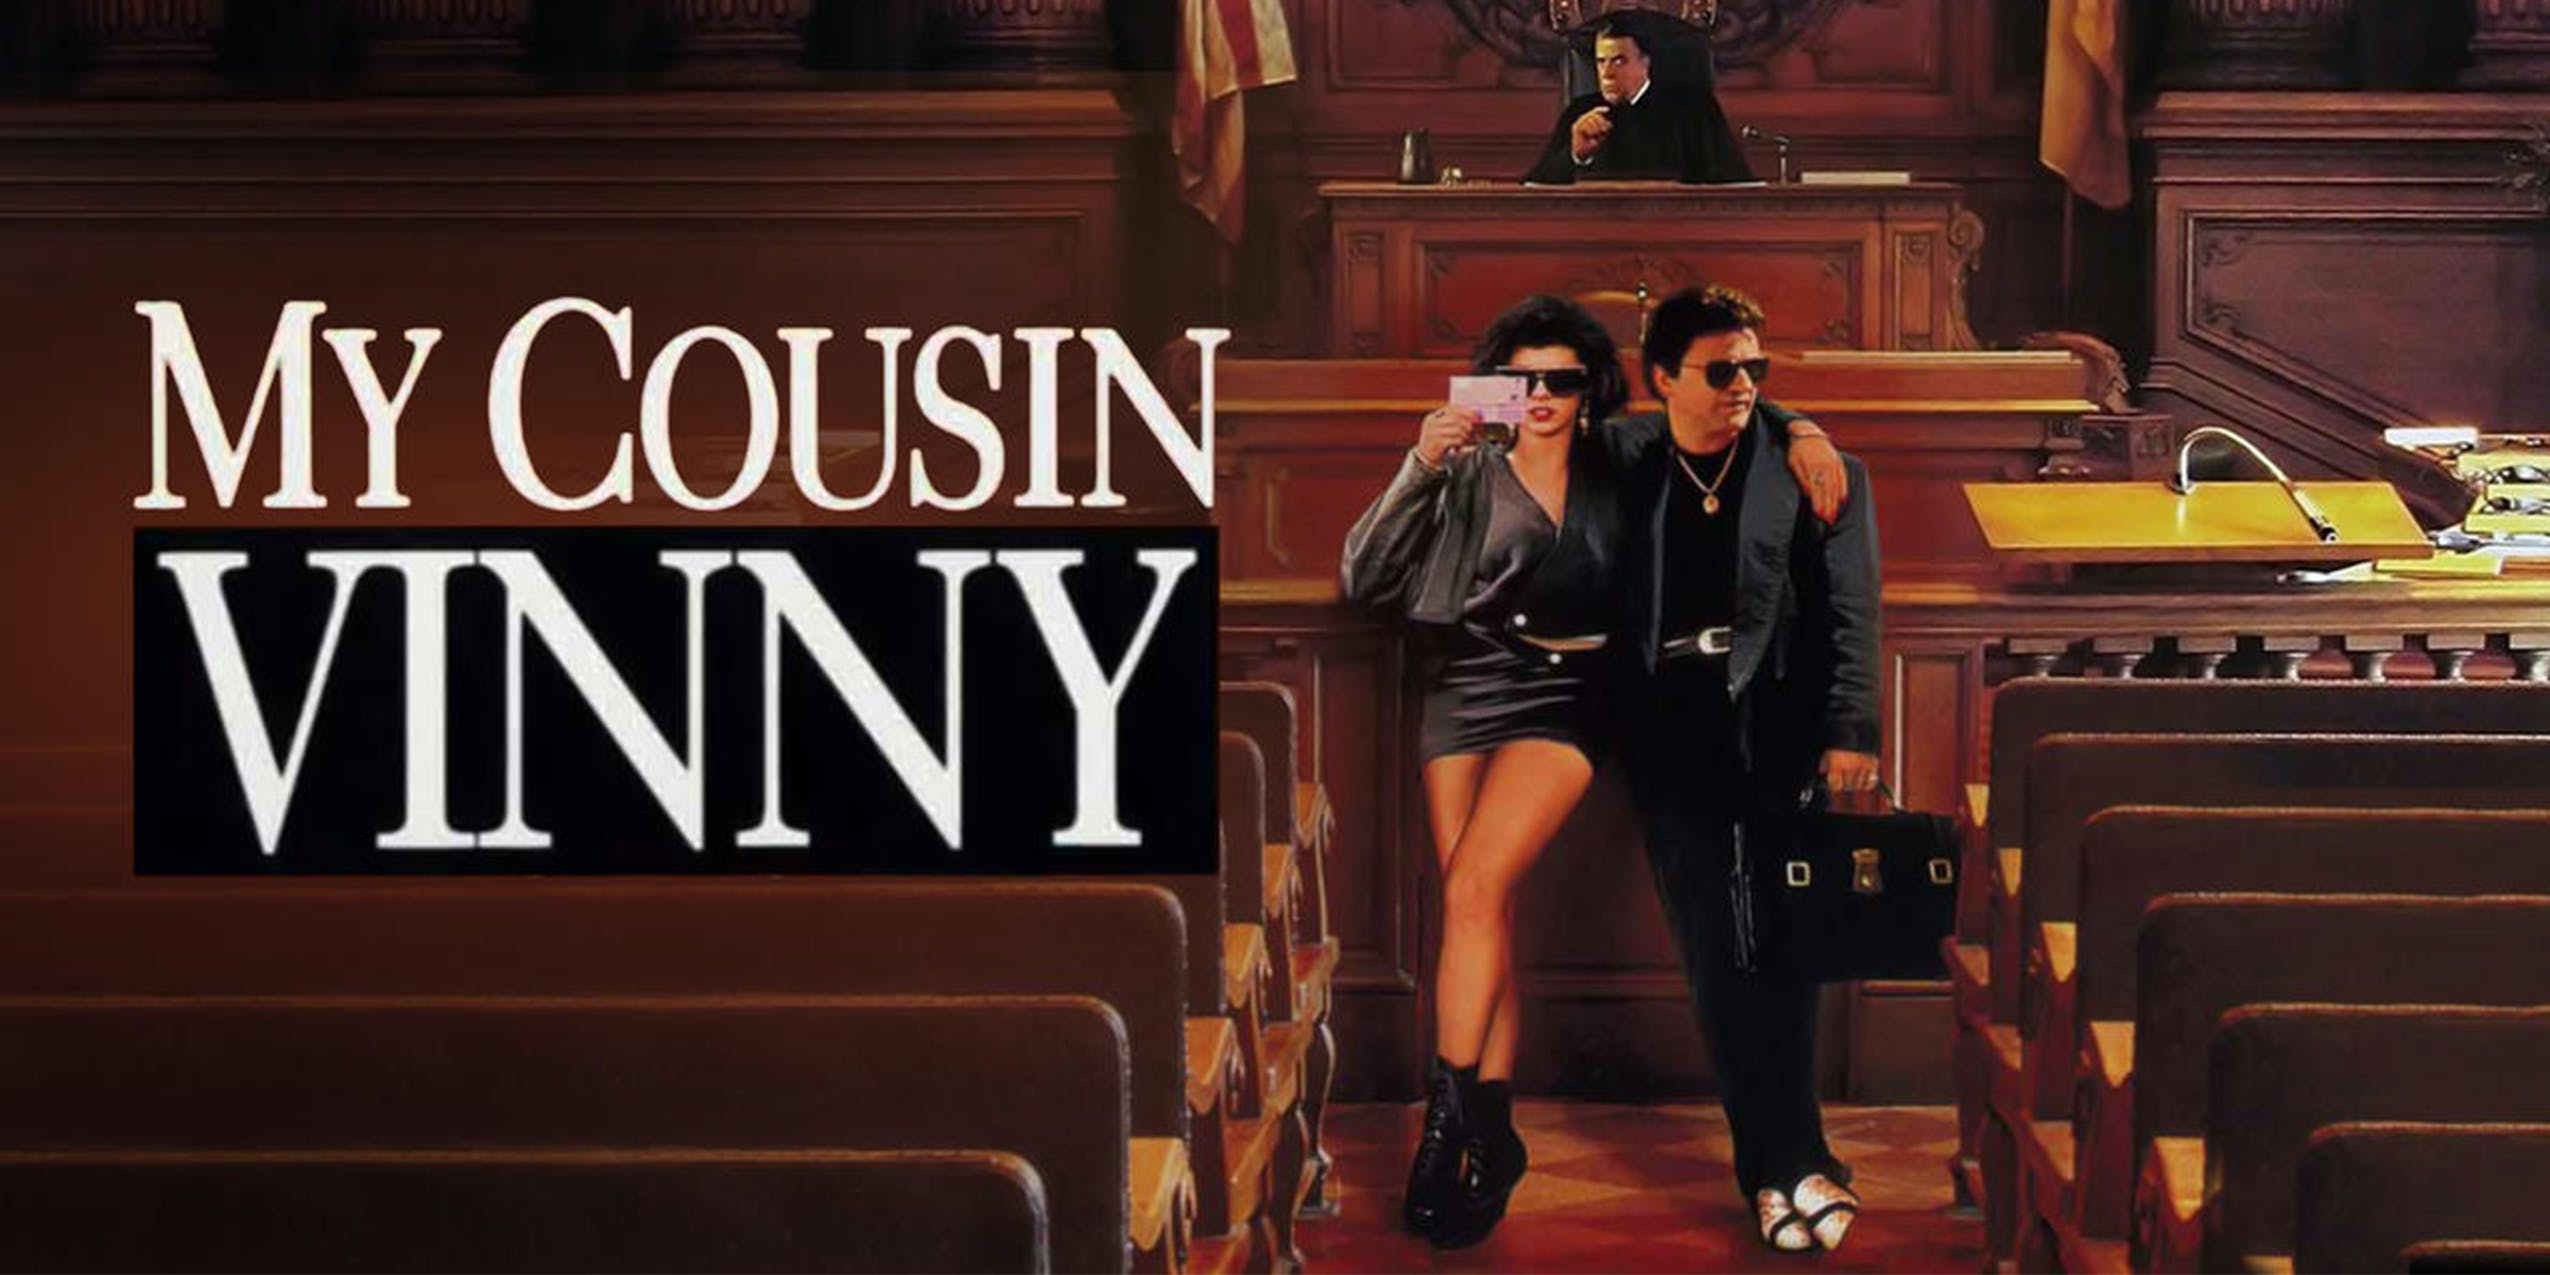 my Cousin Vinny hulu classic movies